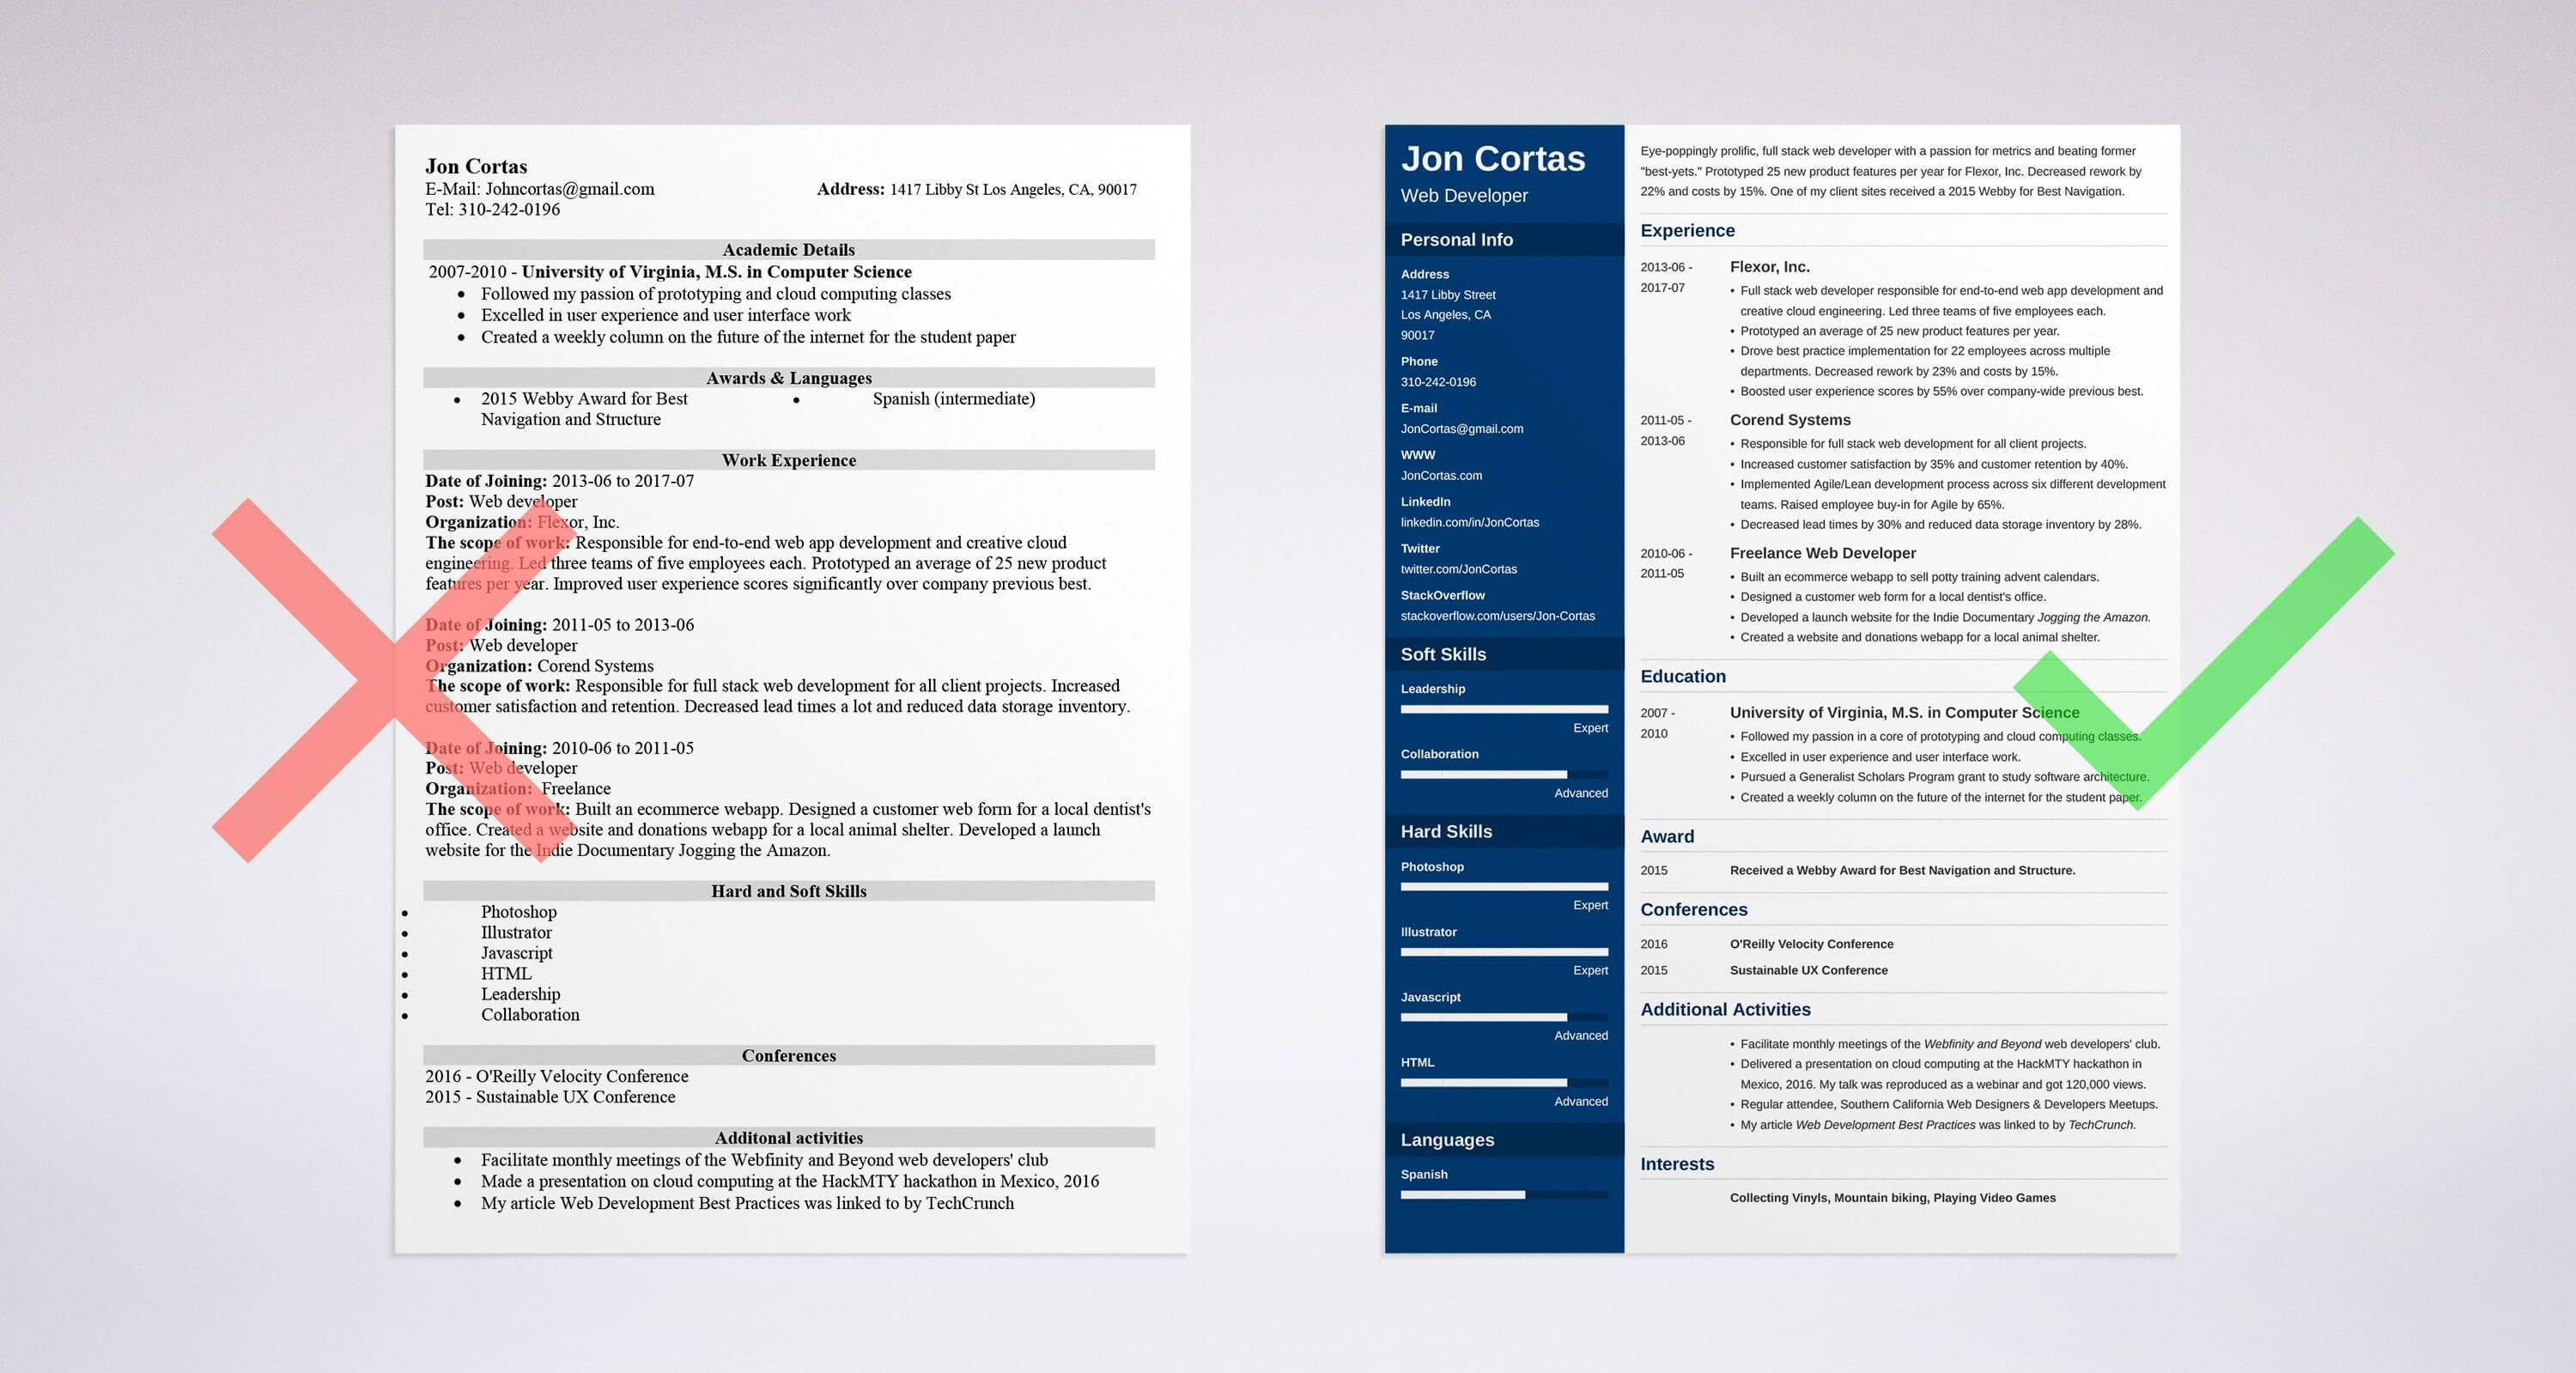 Superior Web Developer Resume Sample Regarding Sample Web Developer Resume